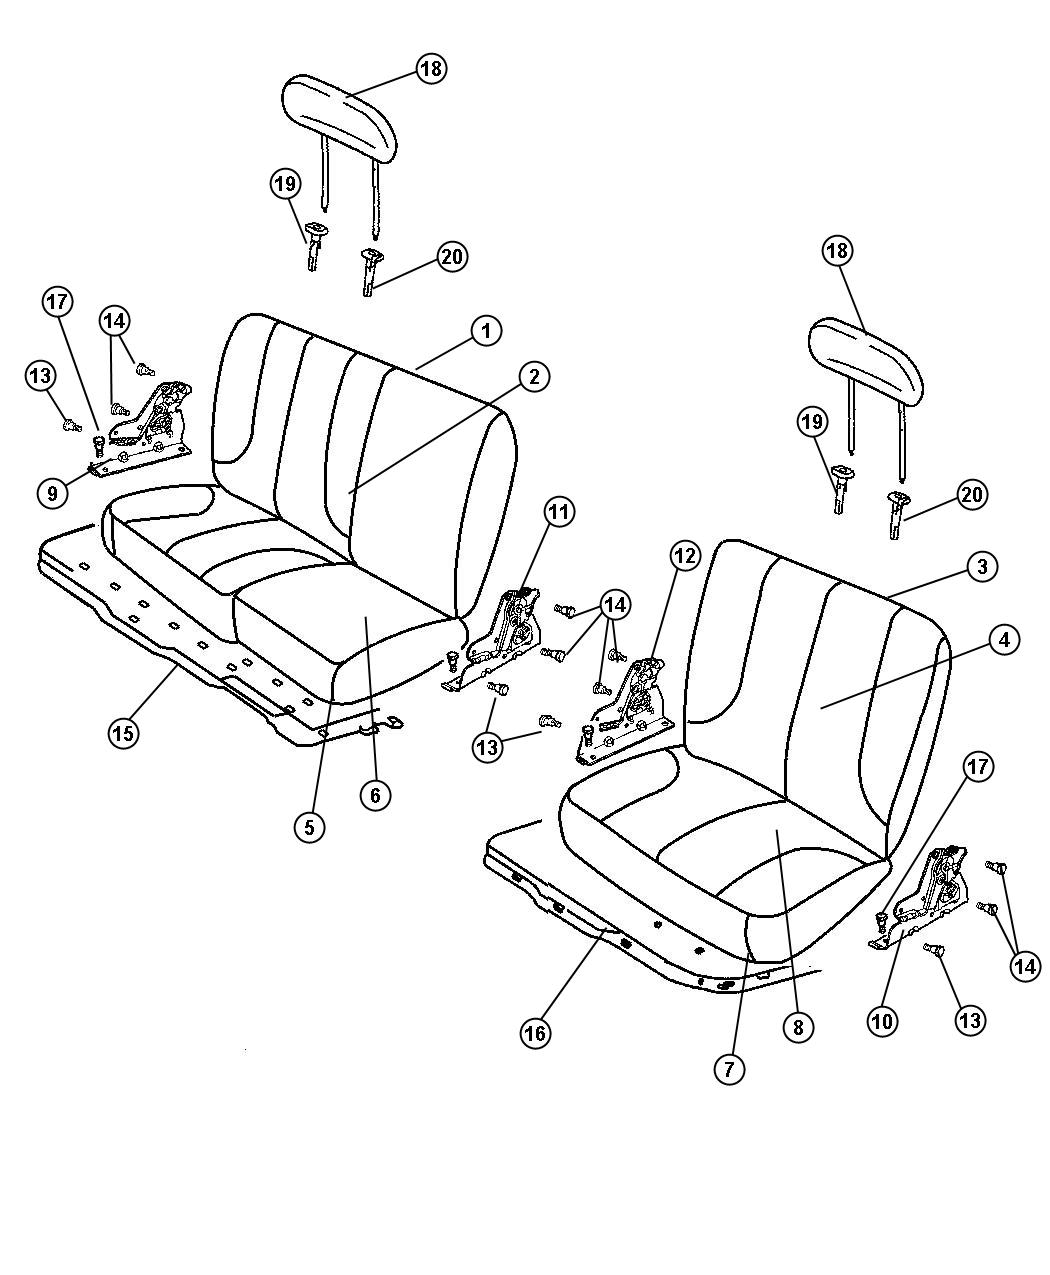 Diagram Rear Seat - Split Seat - Trim Code [M9]. for your Dodge